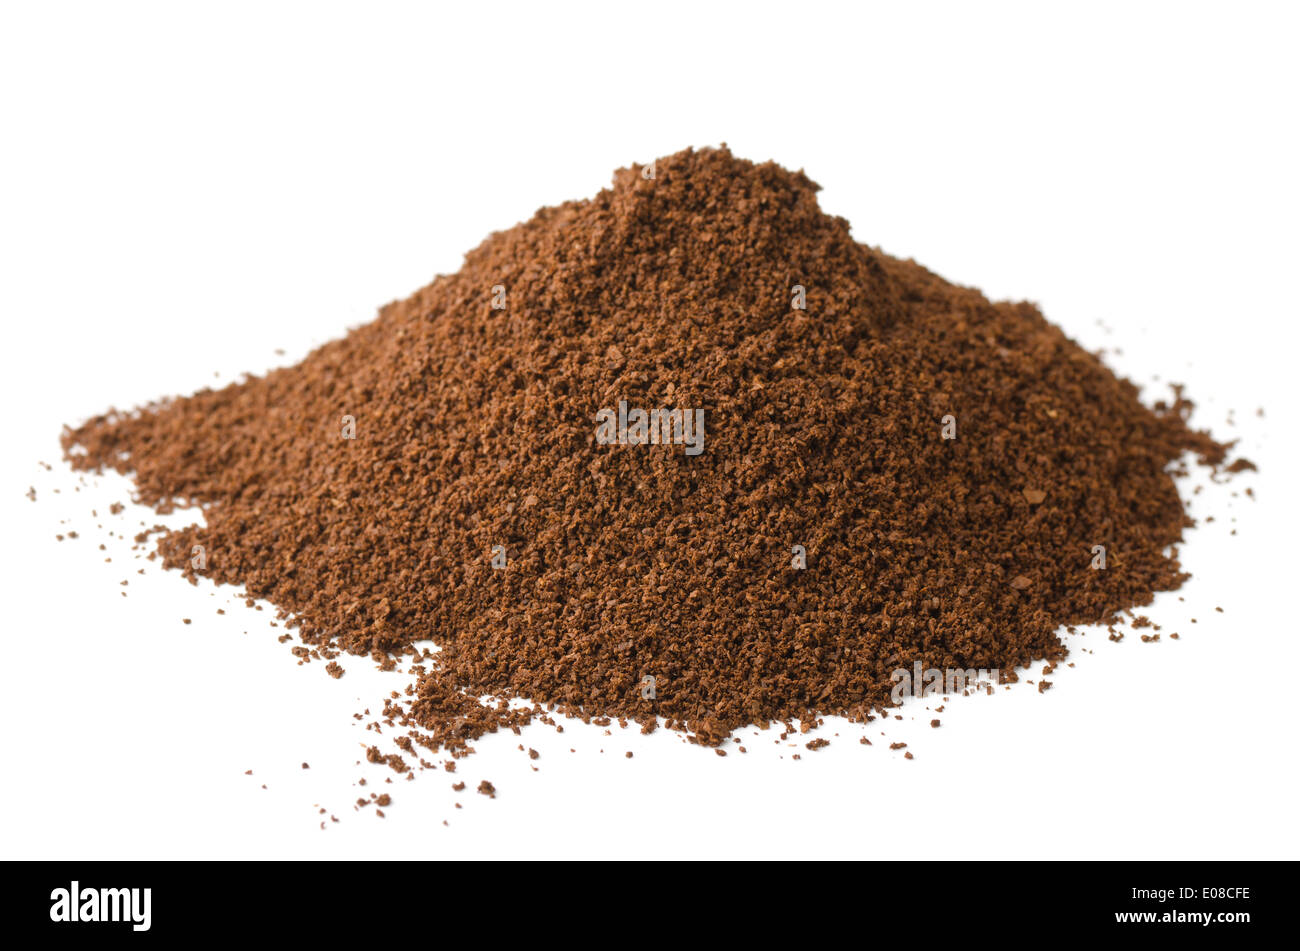 Pile of fresh ground coffee powder isolated on white - Stock Image